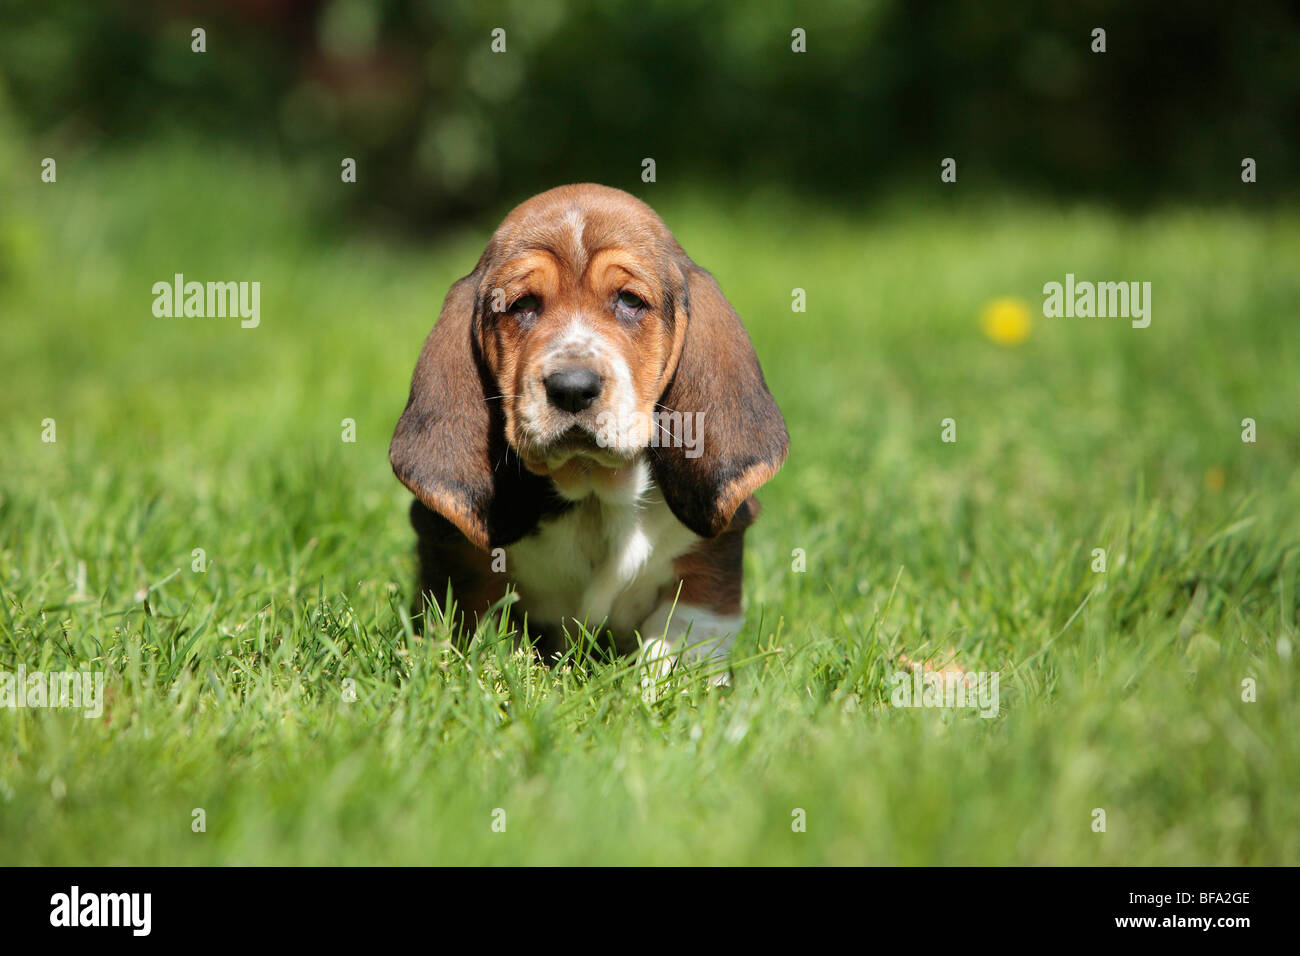 Basset Hound (Canis lupus f. familiaris), puppy sittin in a meadow, Germany - Stock Image